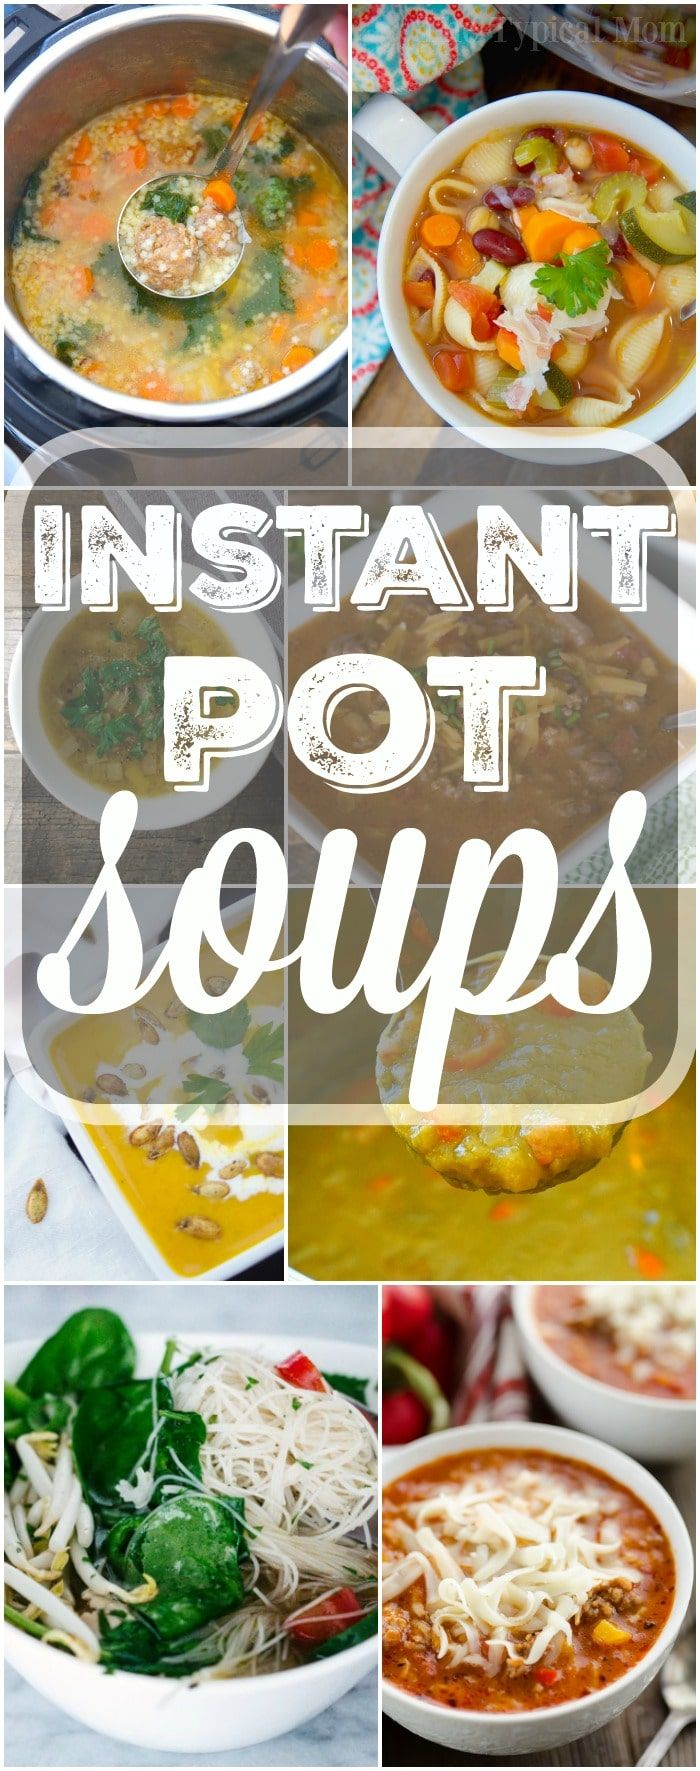 A great list of your favorite Instant Pot soup recipes are here for you to choose from! Get our your pressure cooker this winter and try something new for dinner. Creamy and healthy options all made in less than 30 minutes and sure to please everyone in your family, even your kids. #instantpot #pressurecooker #soups #soup #recipes #easy #healthy via @thetypicalmom